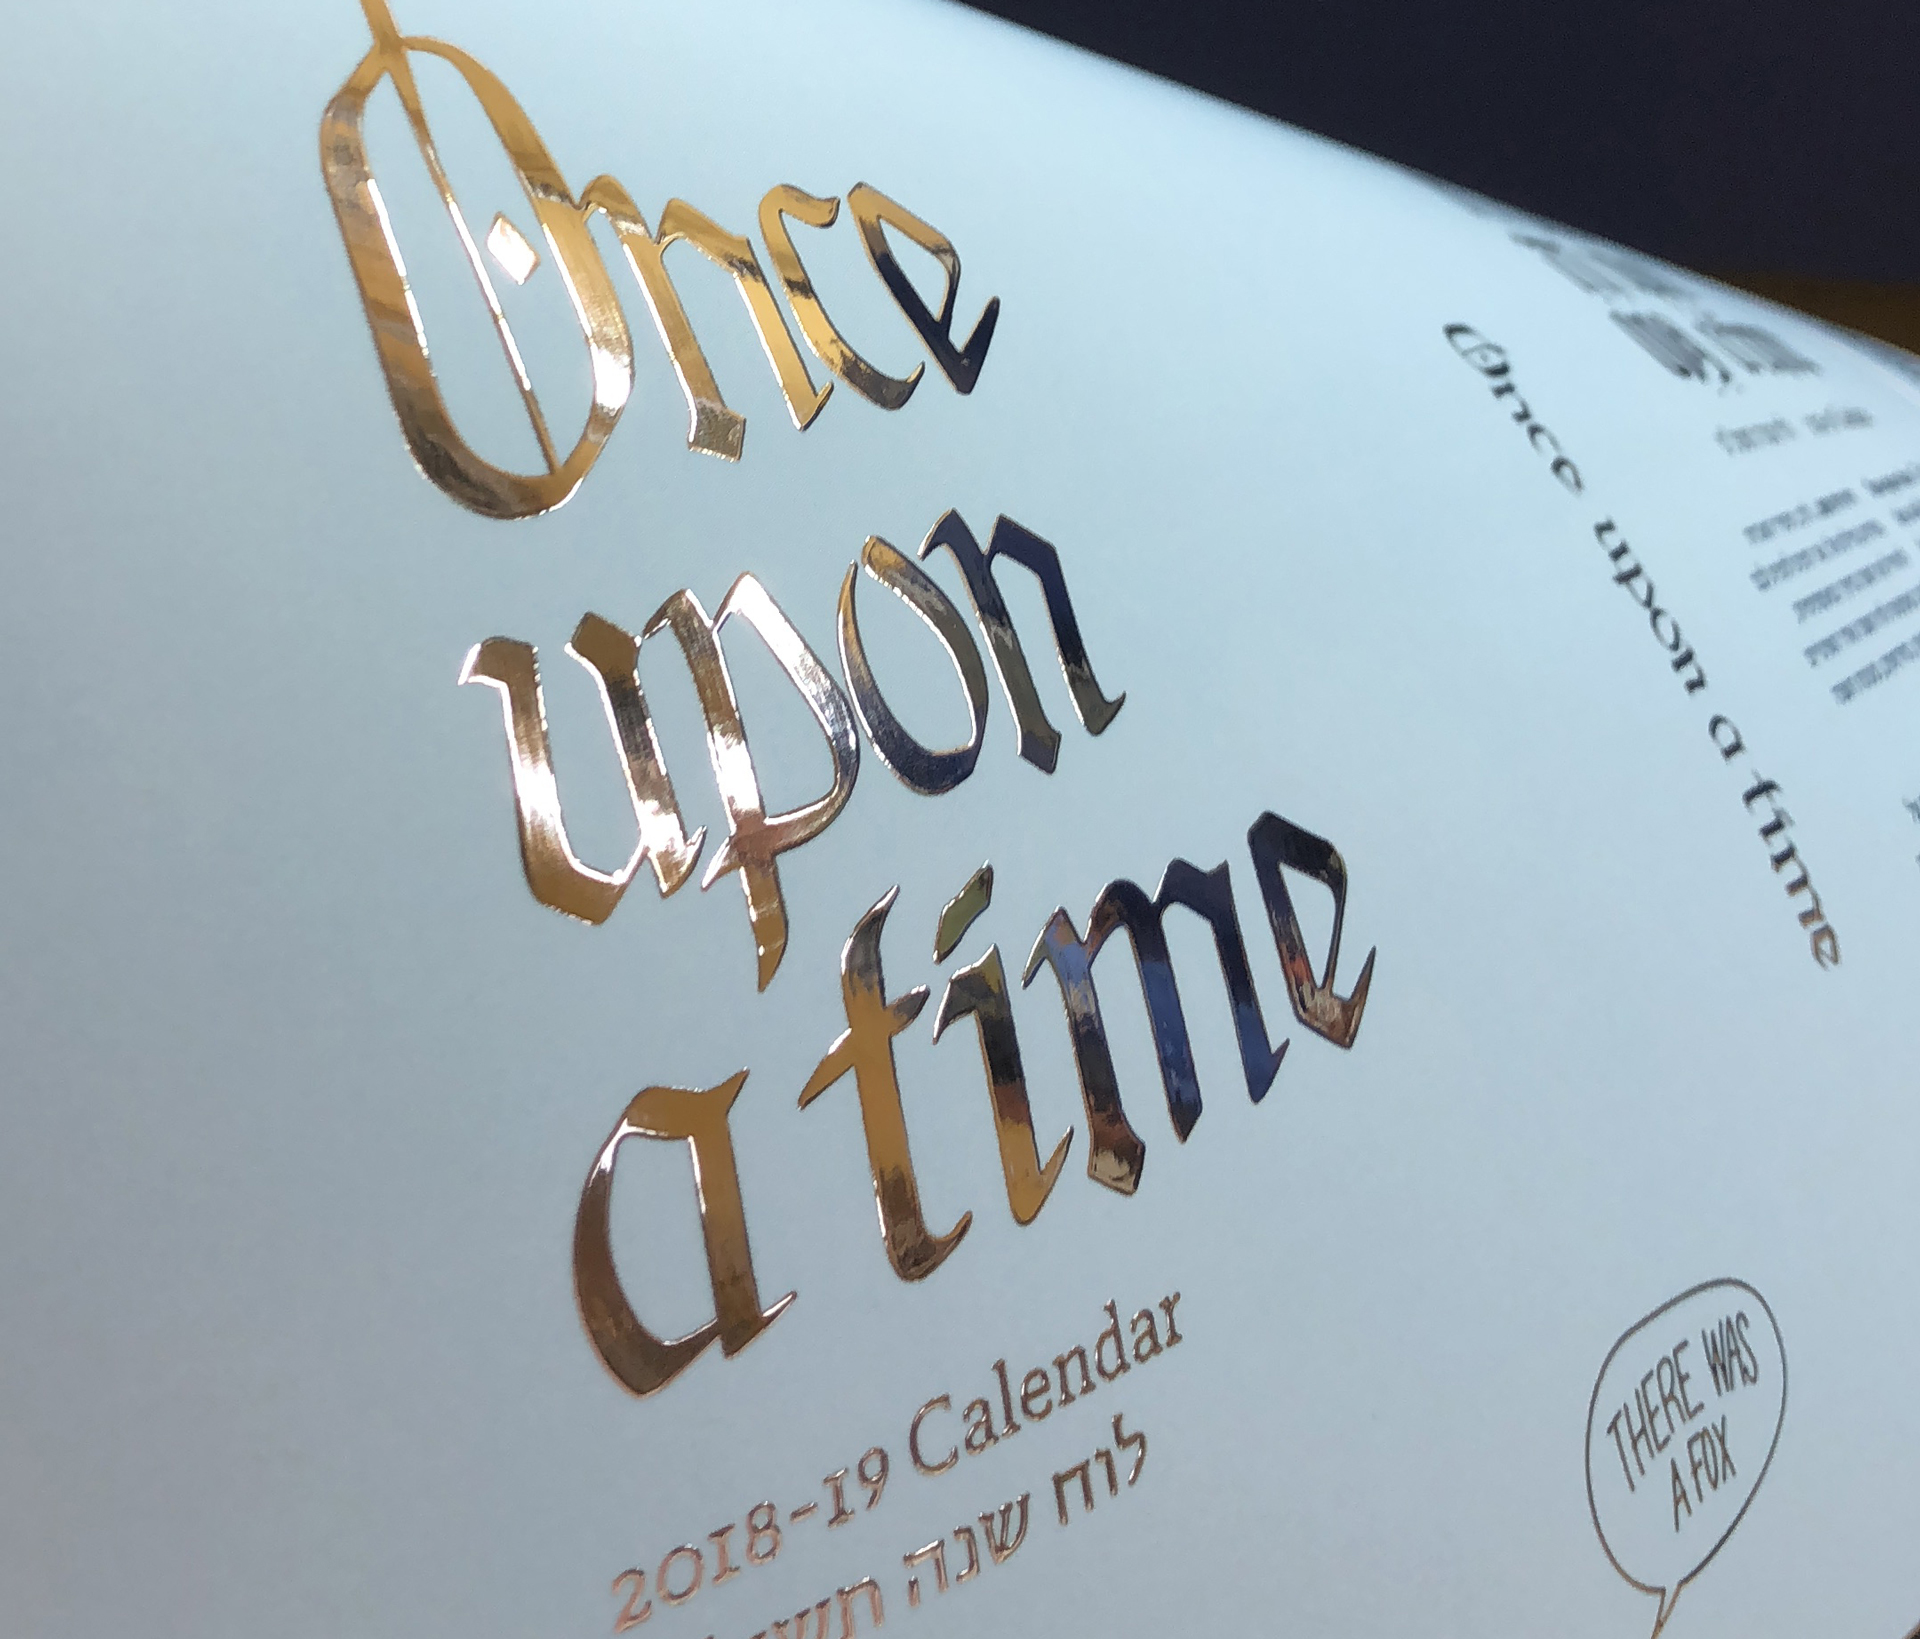 'Once Upon a Time' 2018 Calendar- PaperSpecs